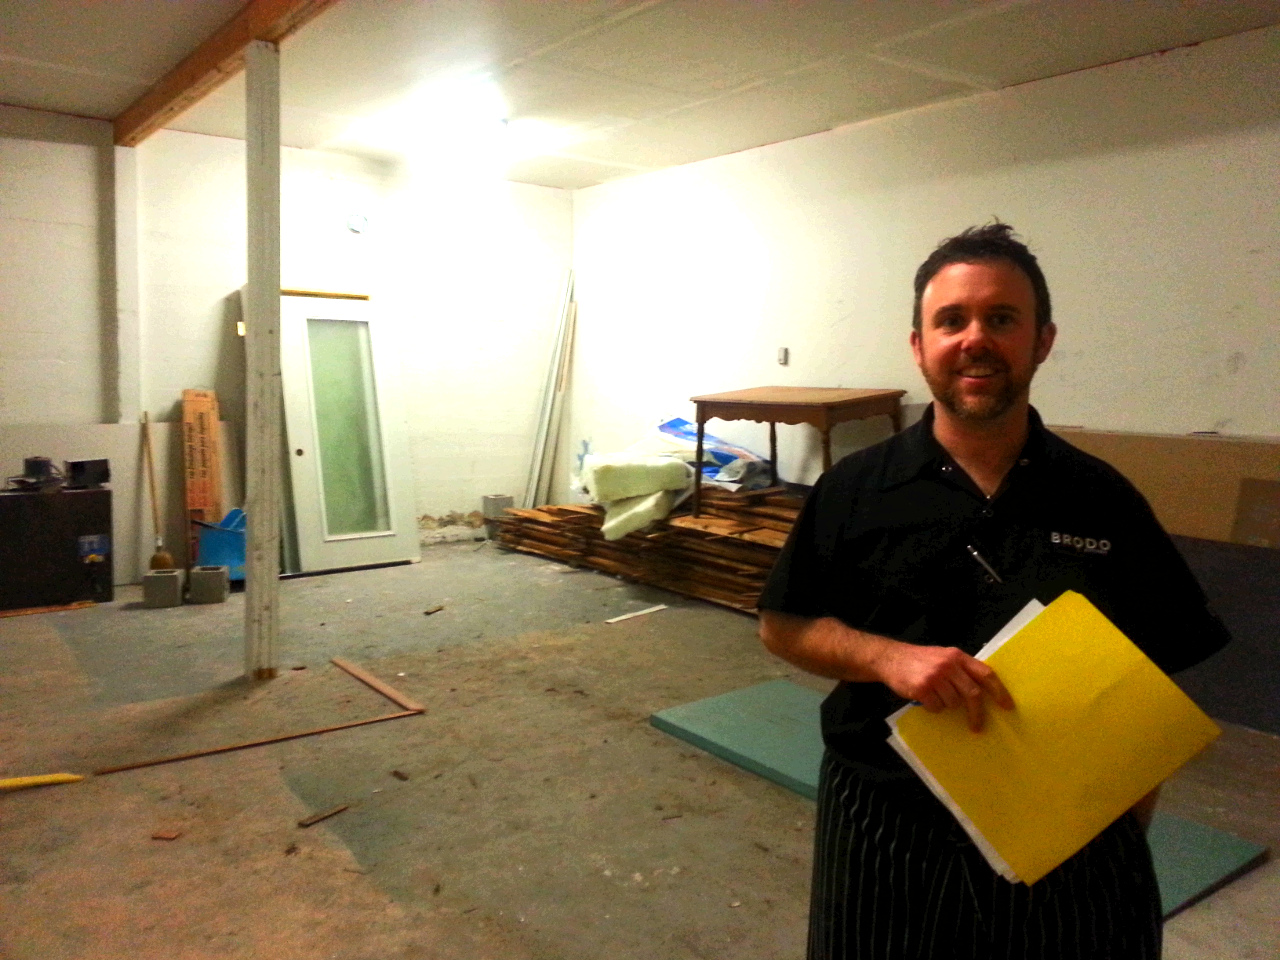 Chef Paul is holding plans for new prep space at BRODO.